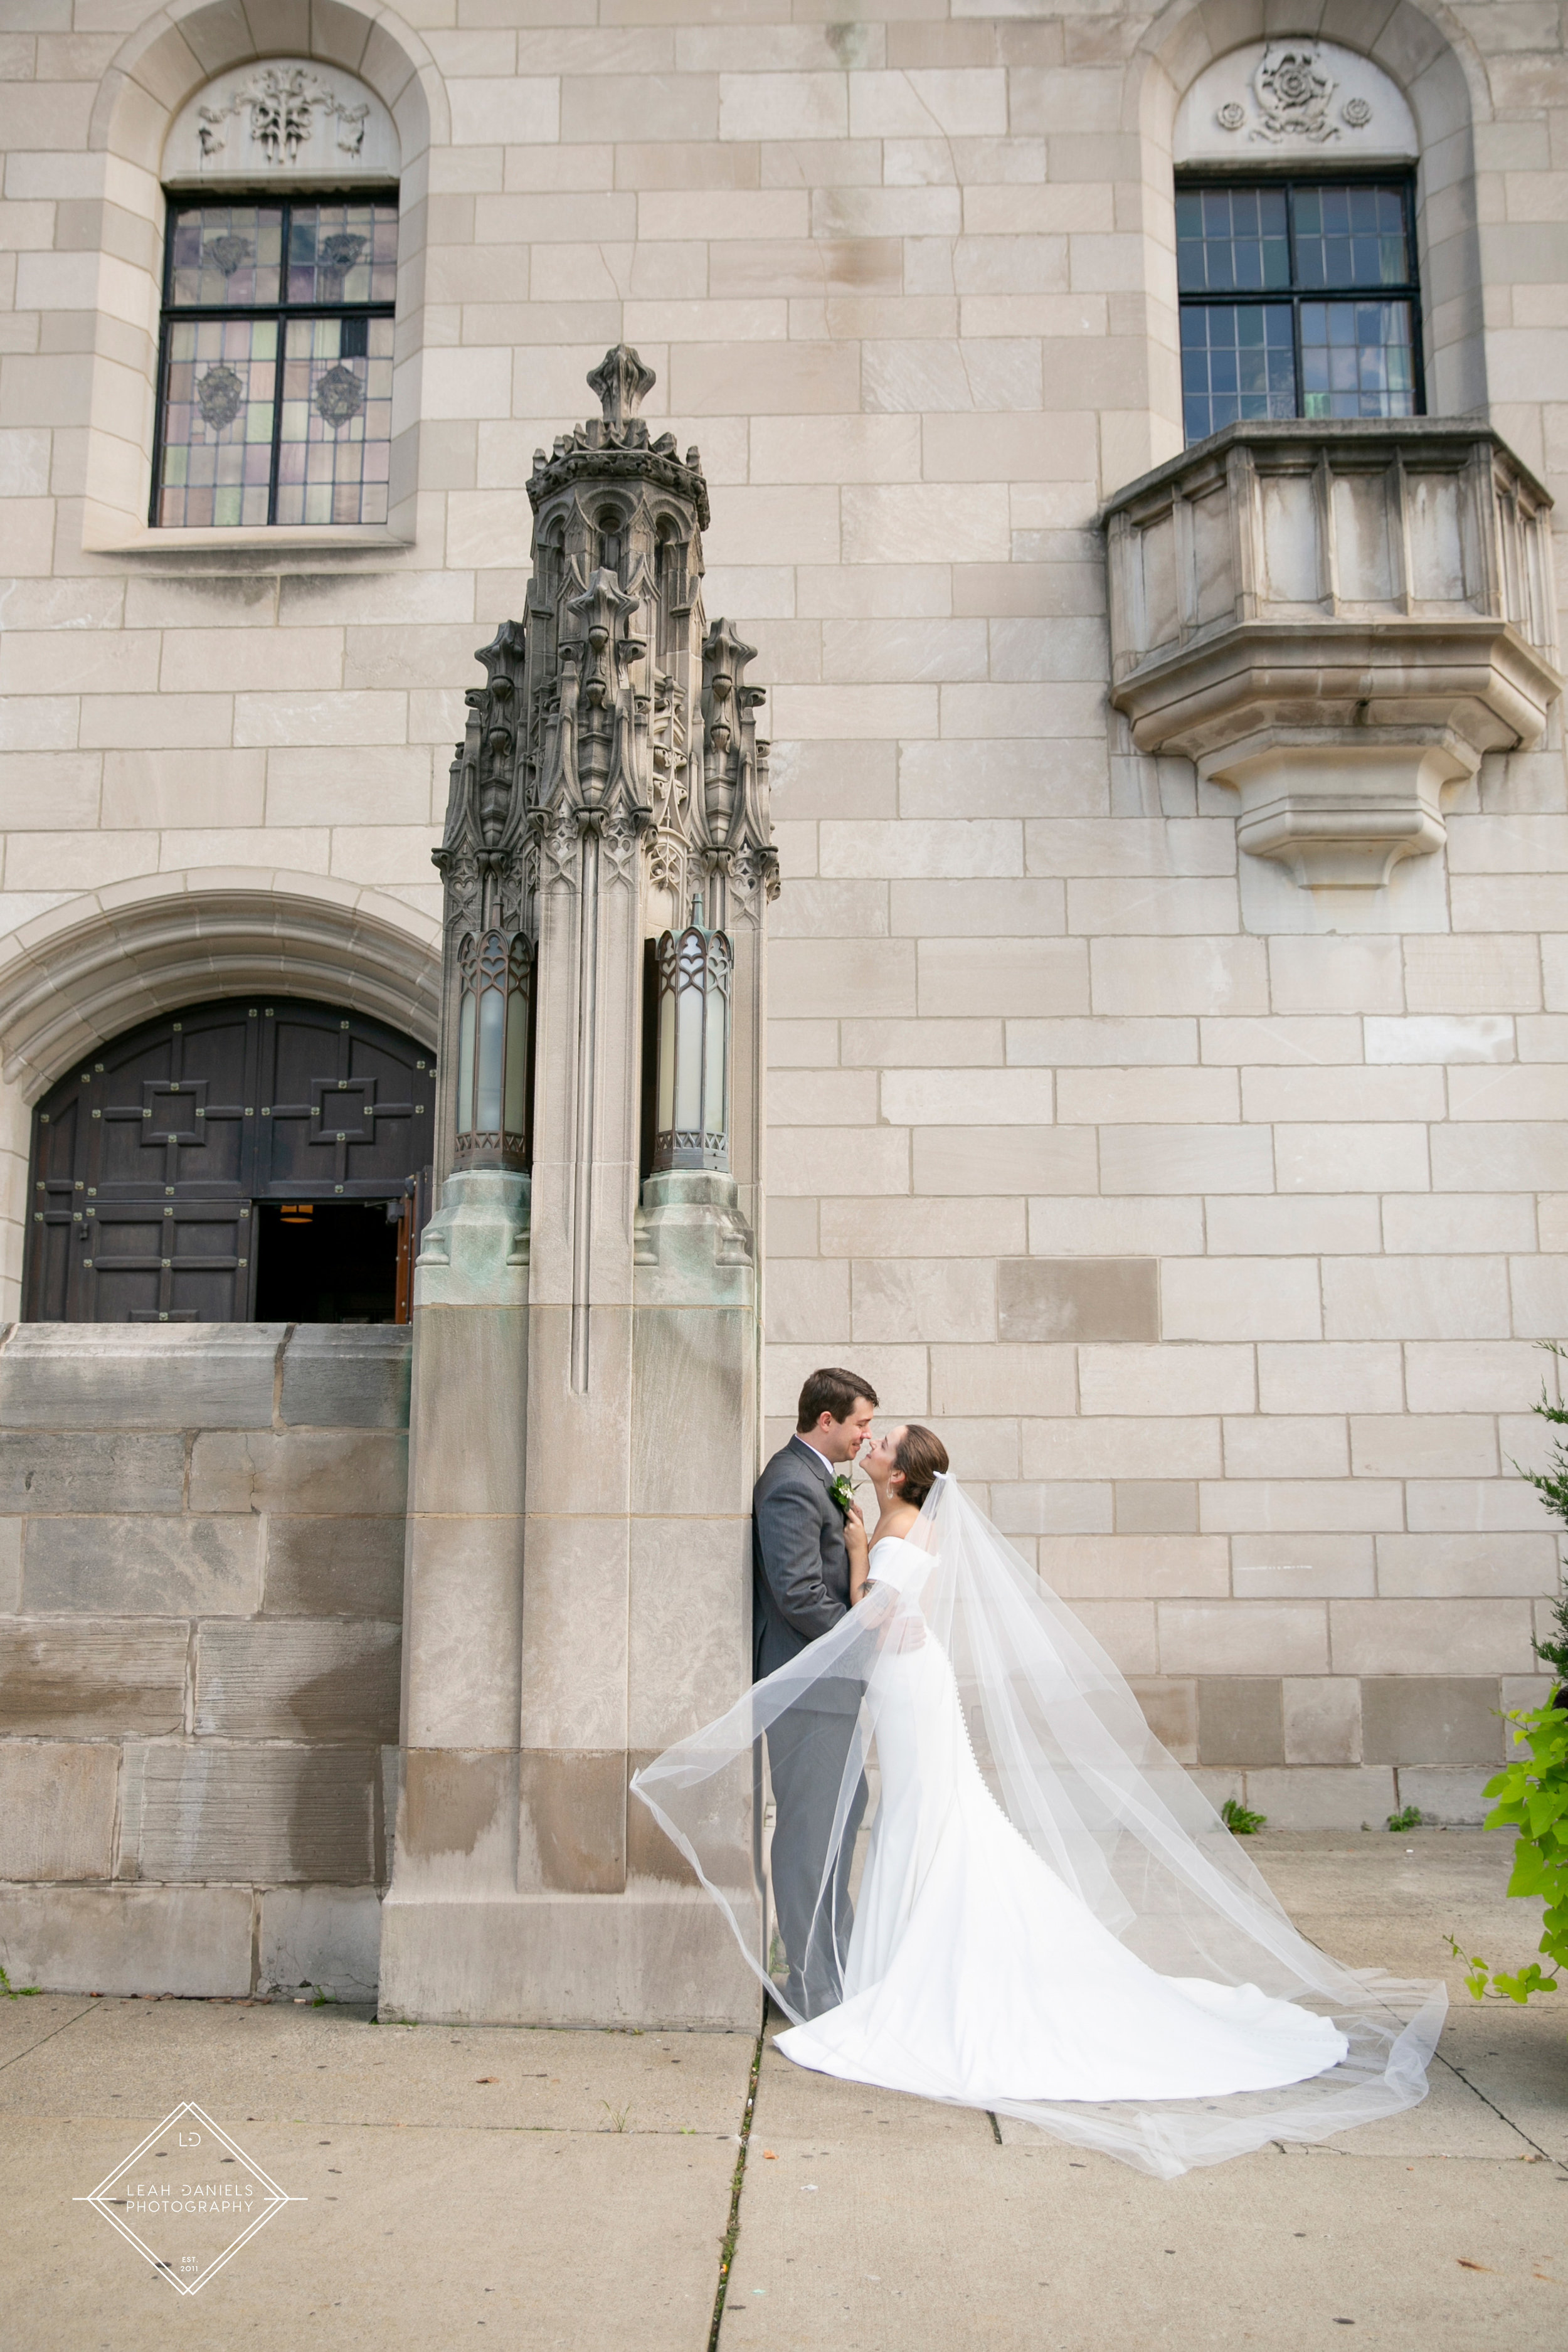 Scranton Wedding Photographers - Scranton Cultural Center